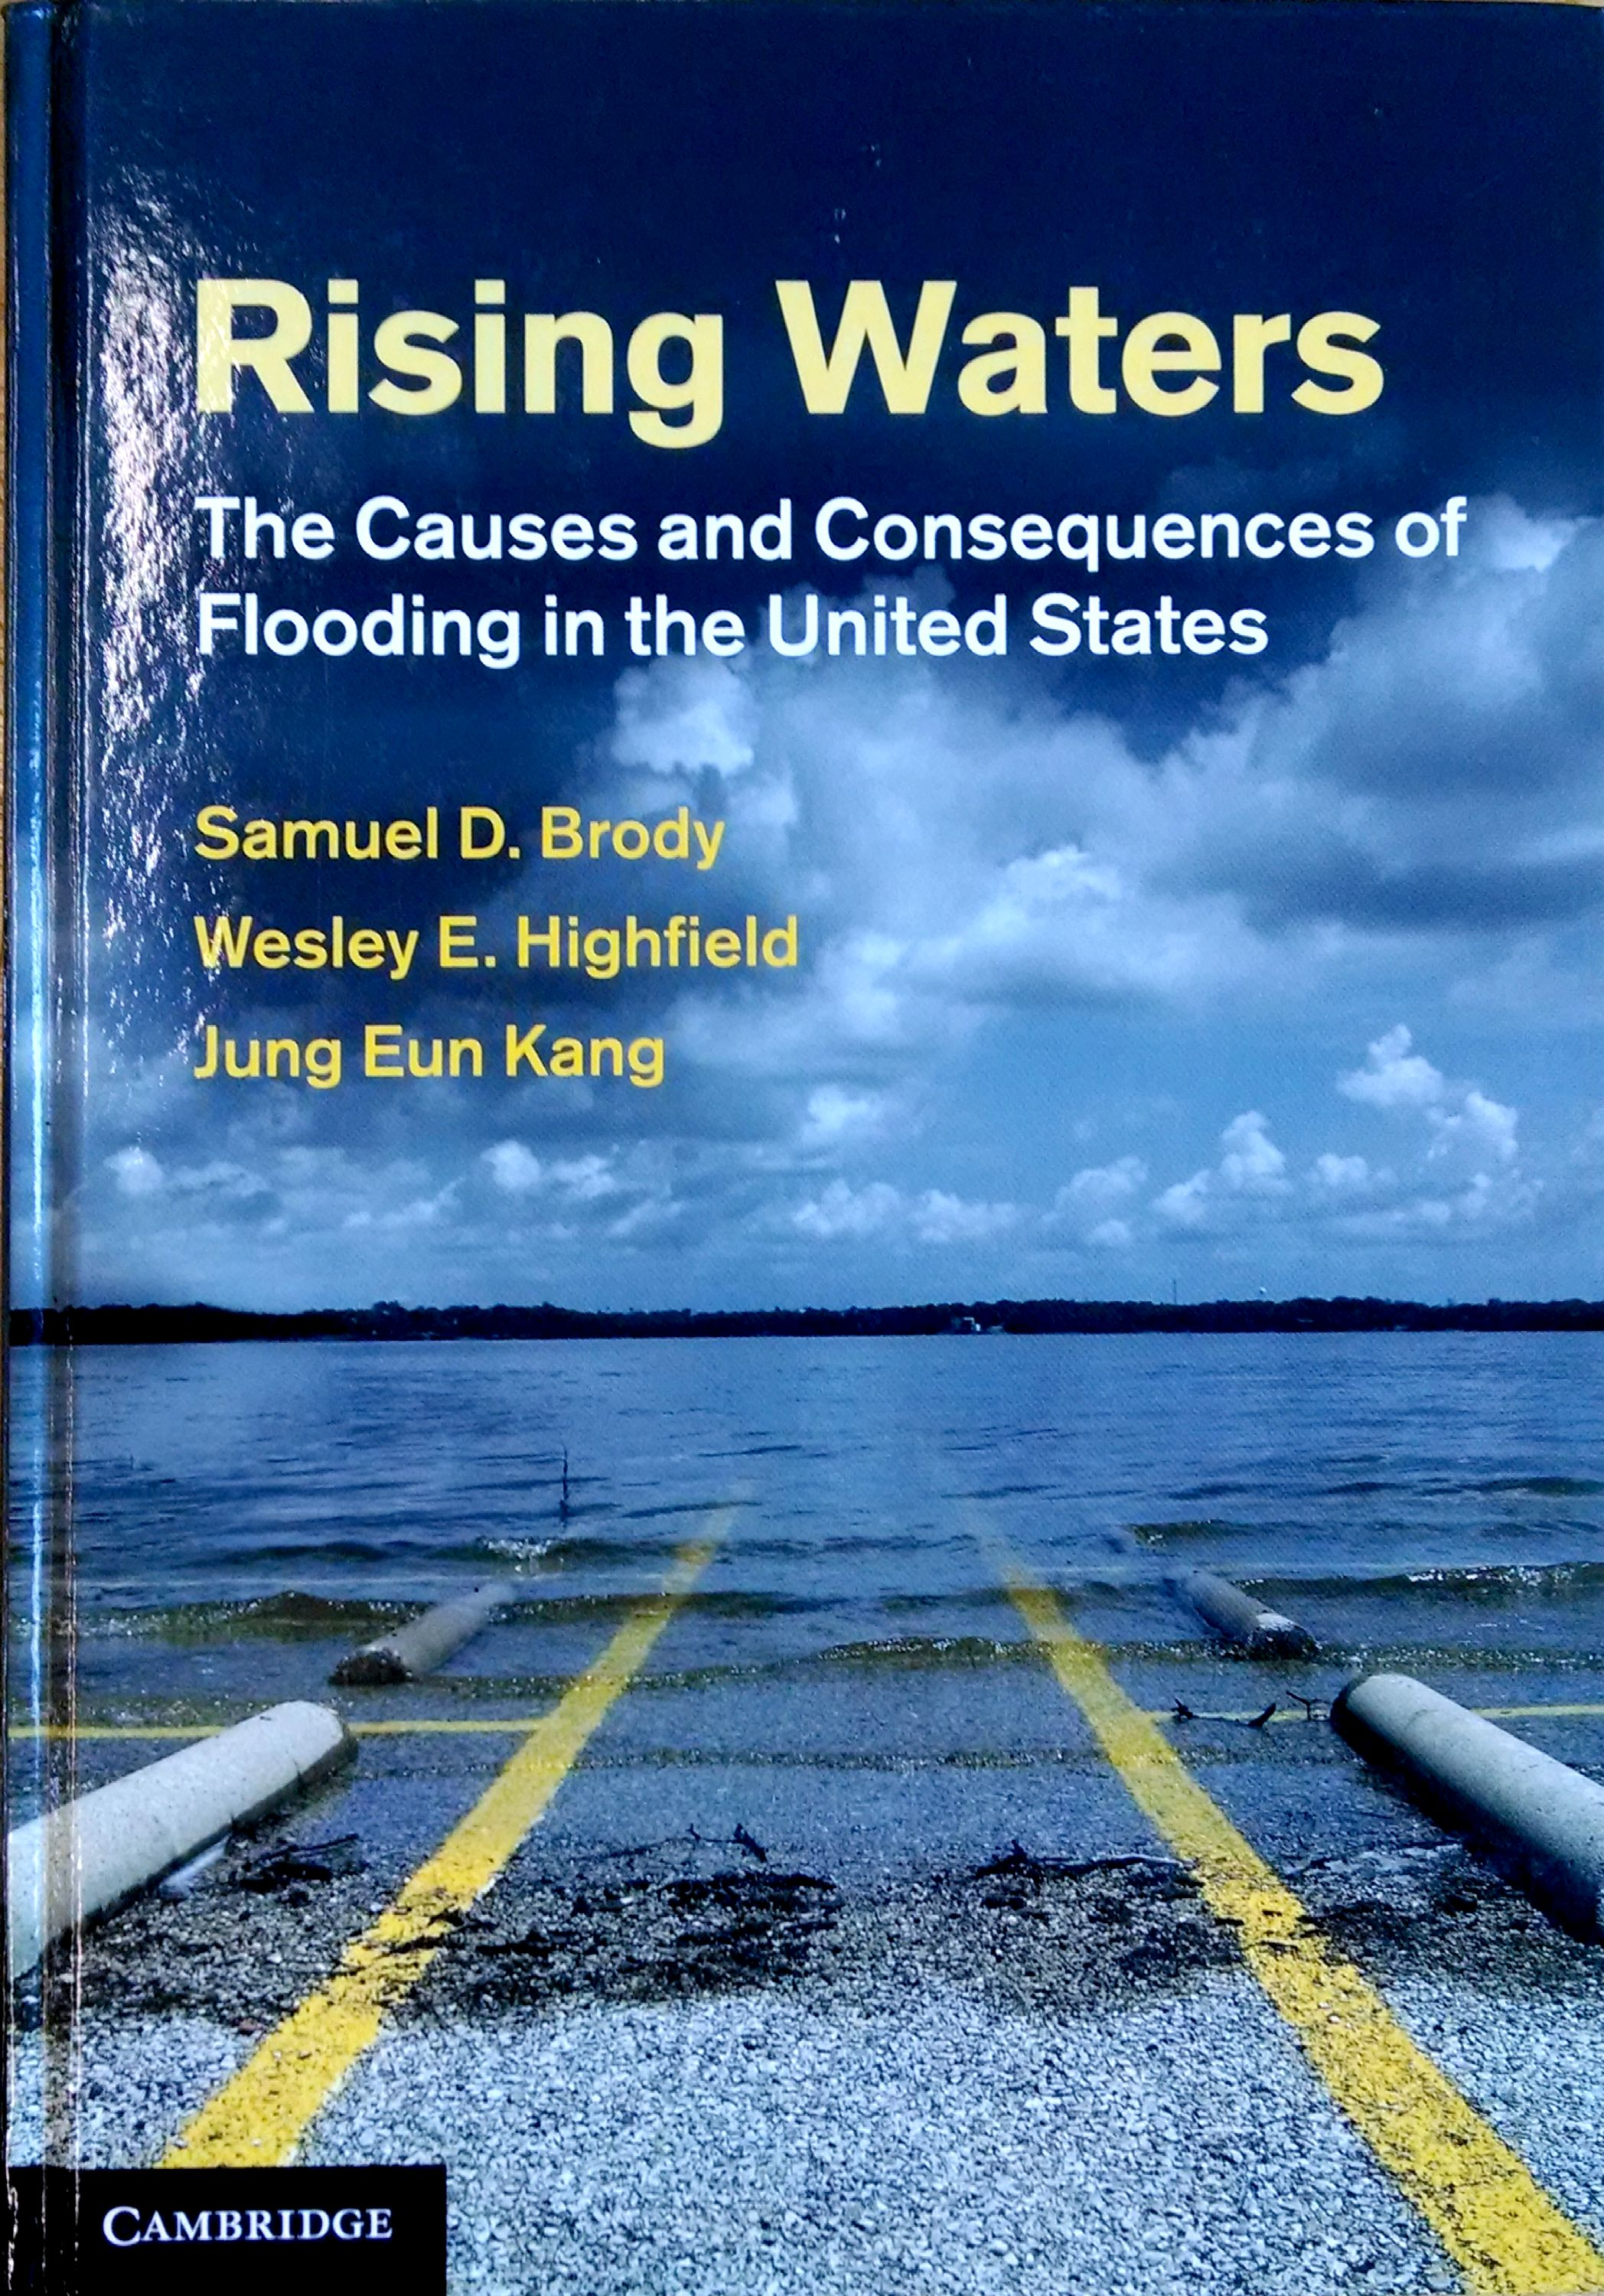 Books on Watershed Management